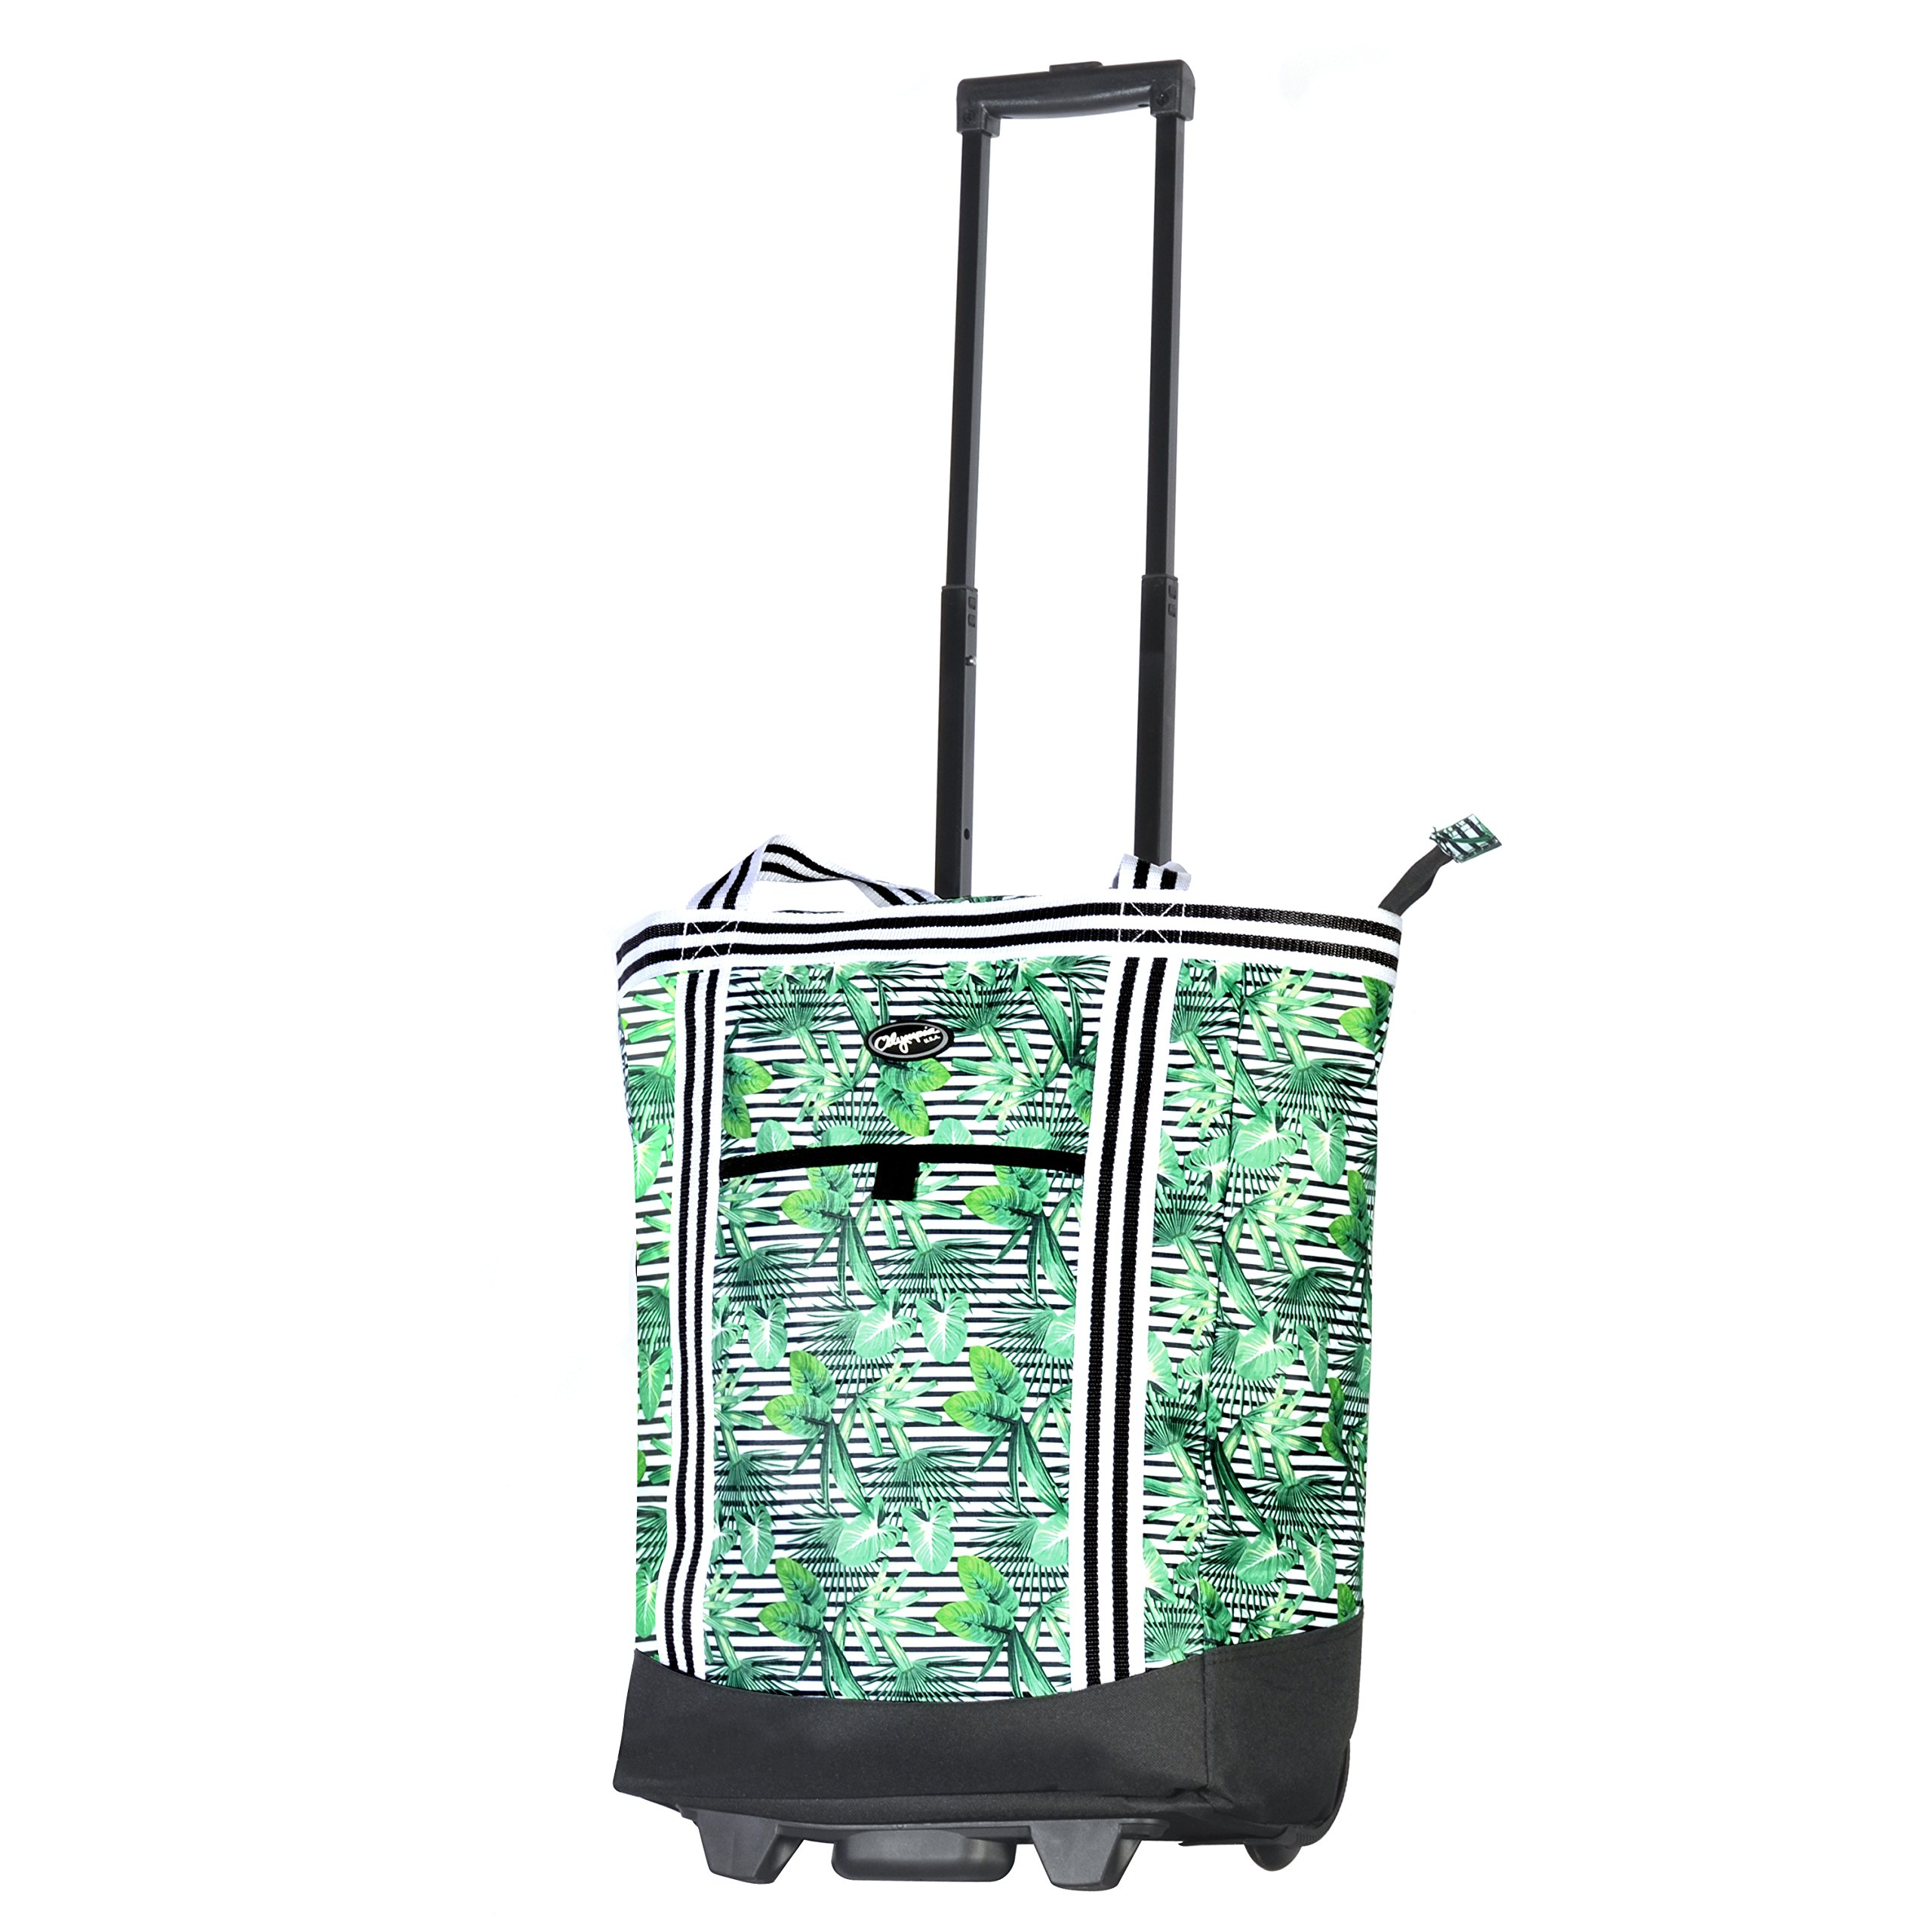 Olympia 2-Piece Rolling Shopper Tote and Cooler Bag, Rain Forest by Olympia (Image #3)